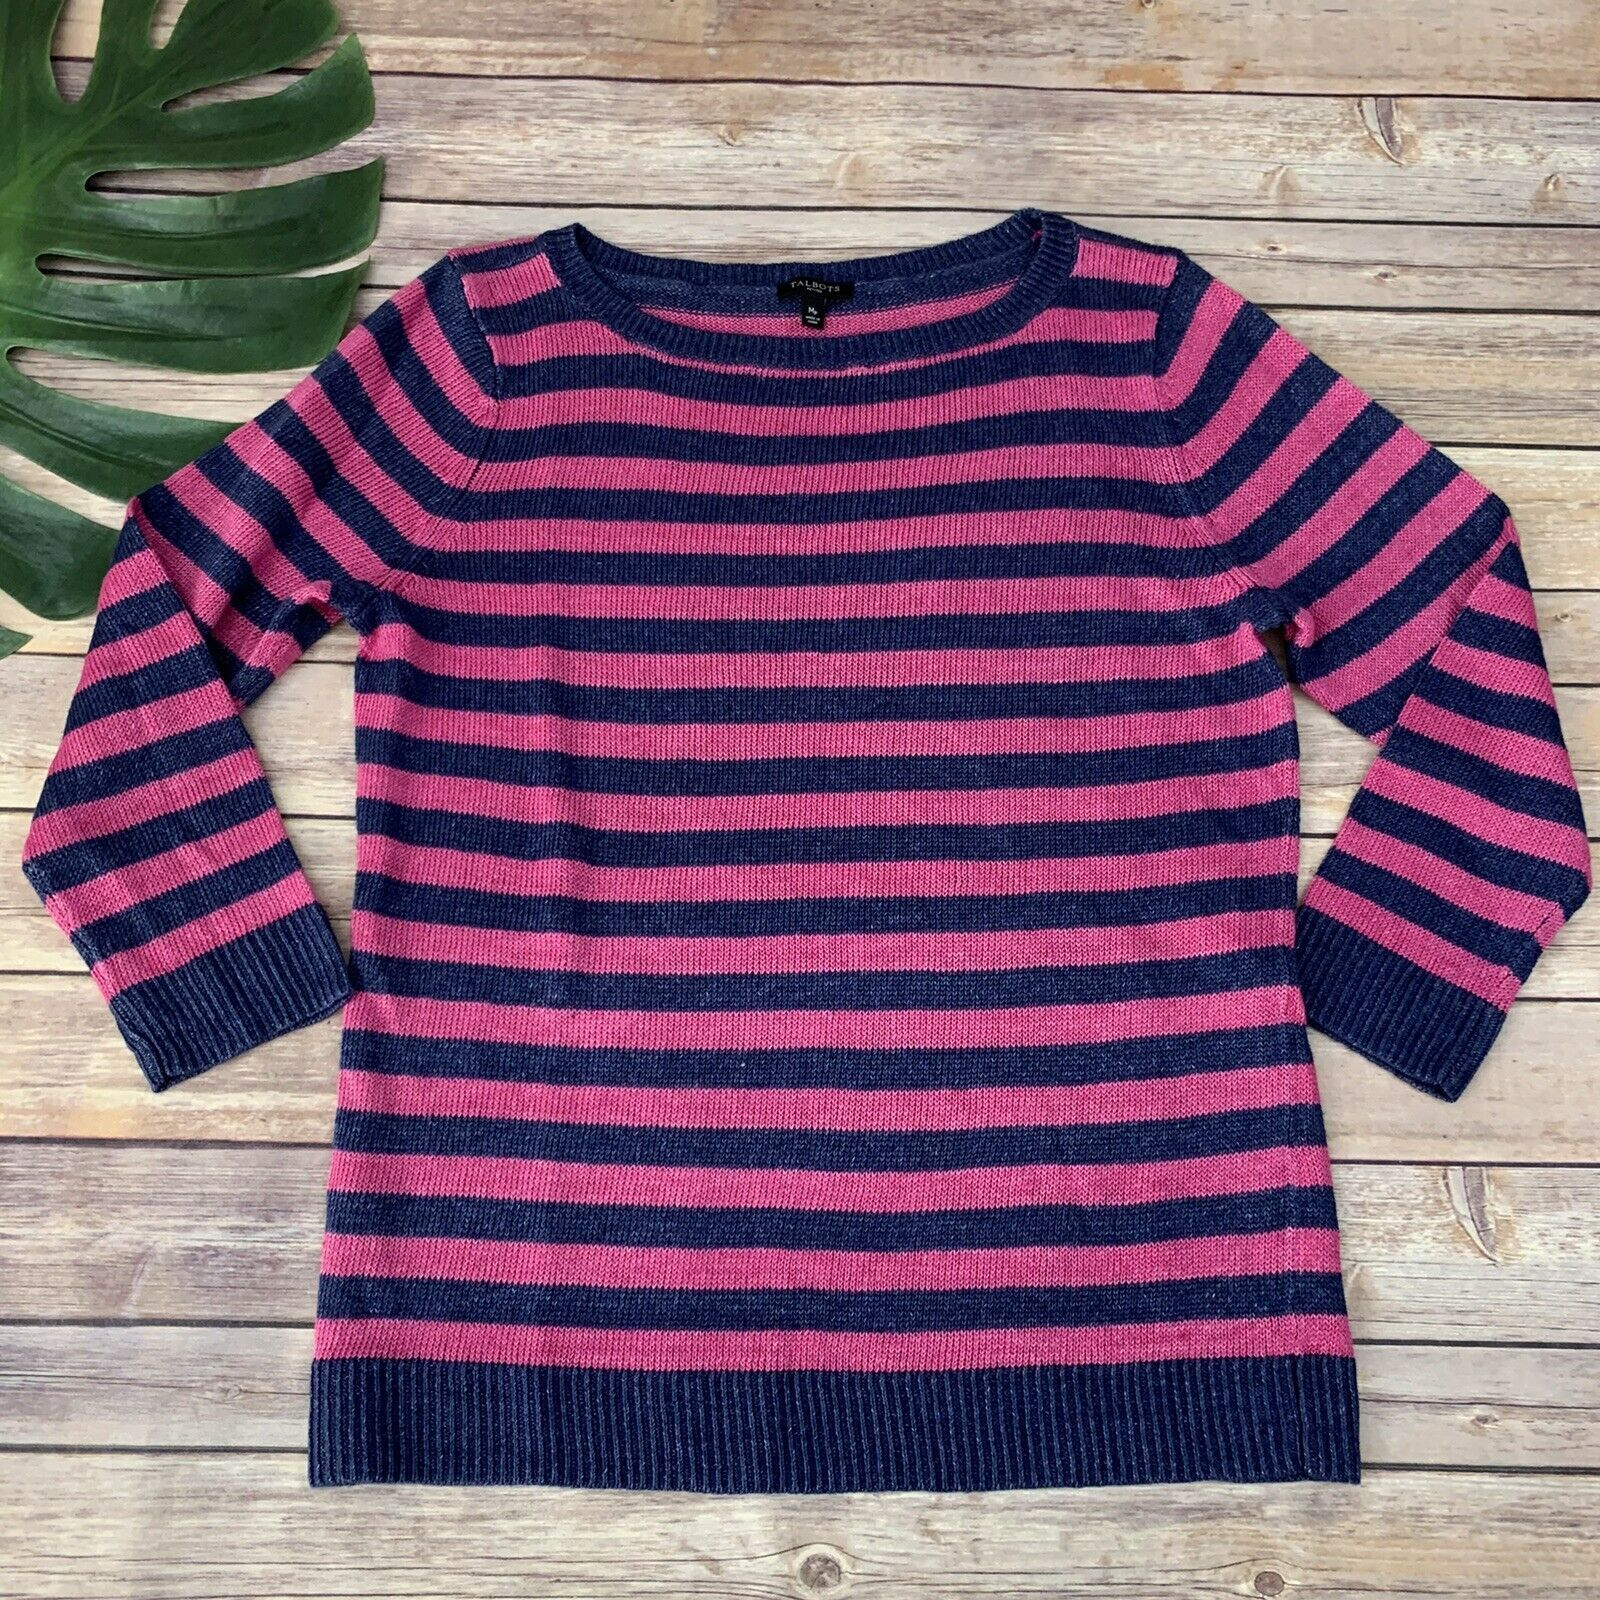 Primary image for Talbots Striped Pullover Sweater Size M Petite Pink Blue Linen 3/4 Sleeve